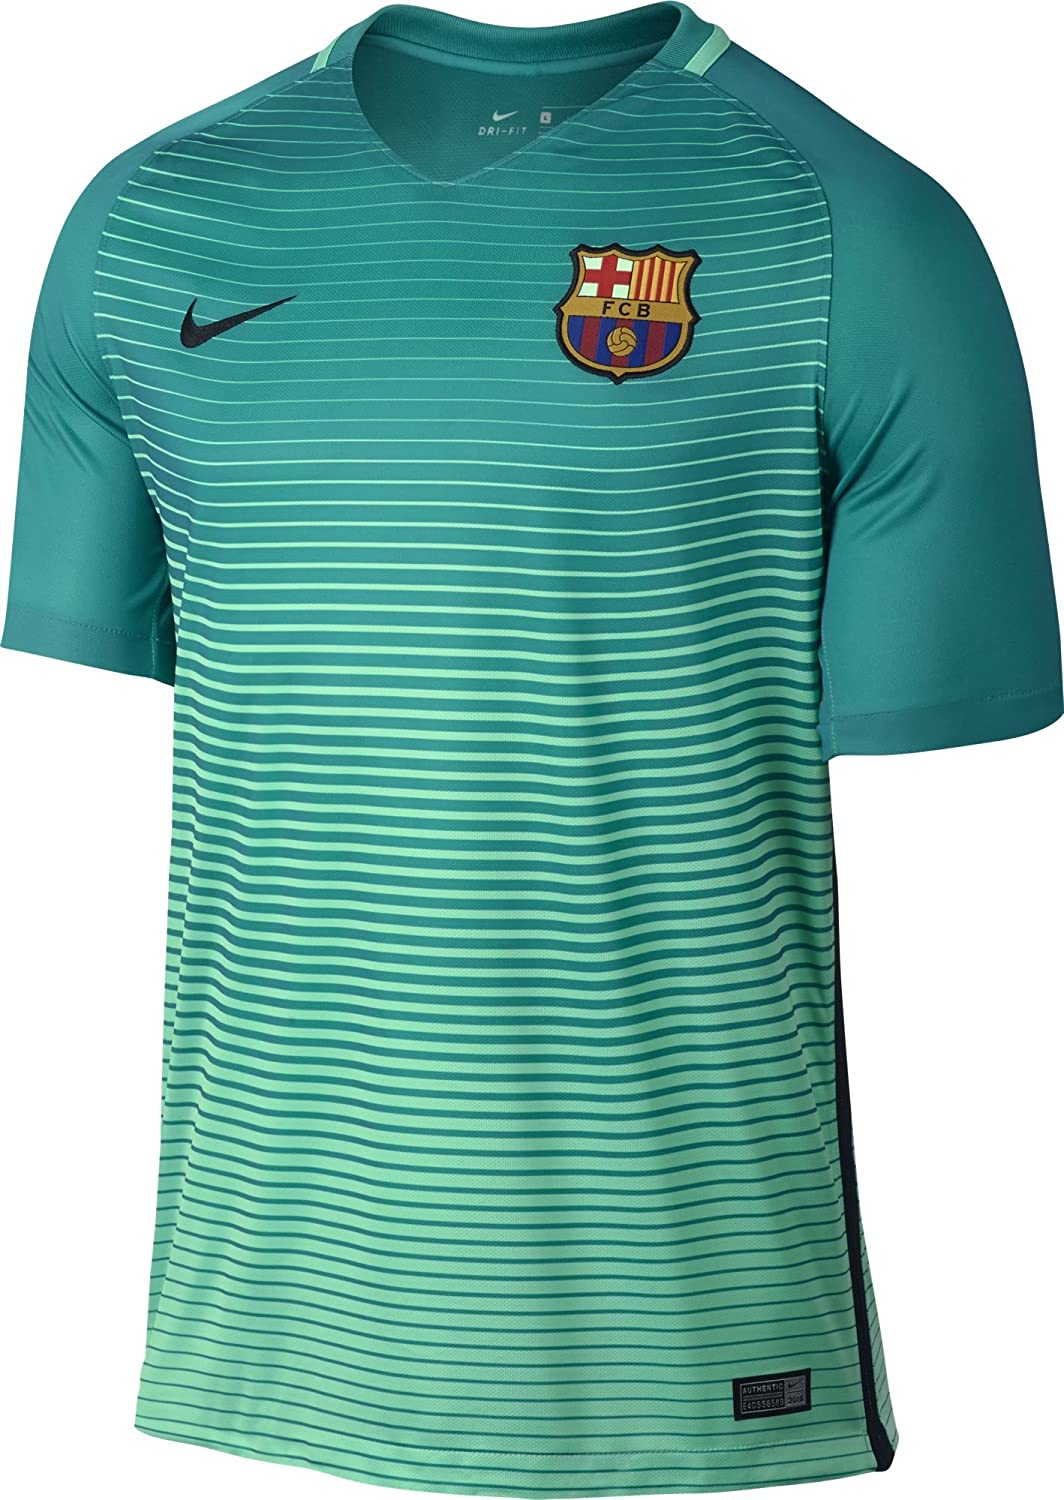 3af78bafa ... low cost nike mens barcelona third soccer jersey 2016 2017 green glow  28bfb f774e